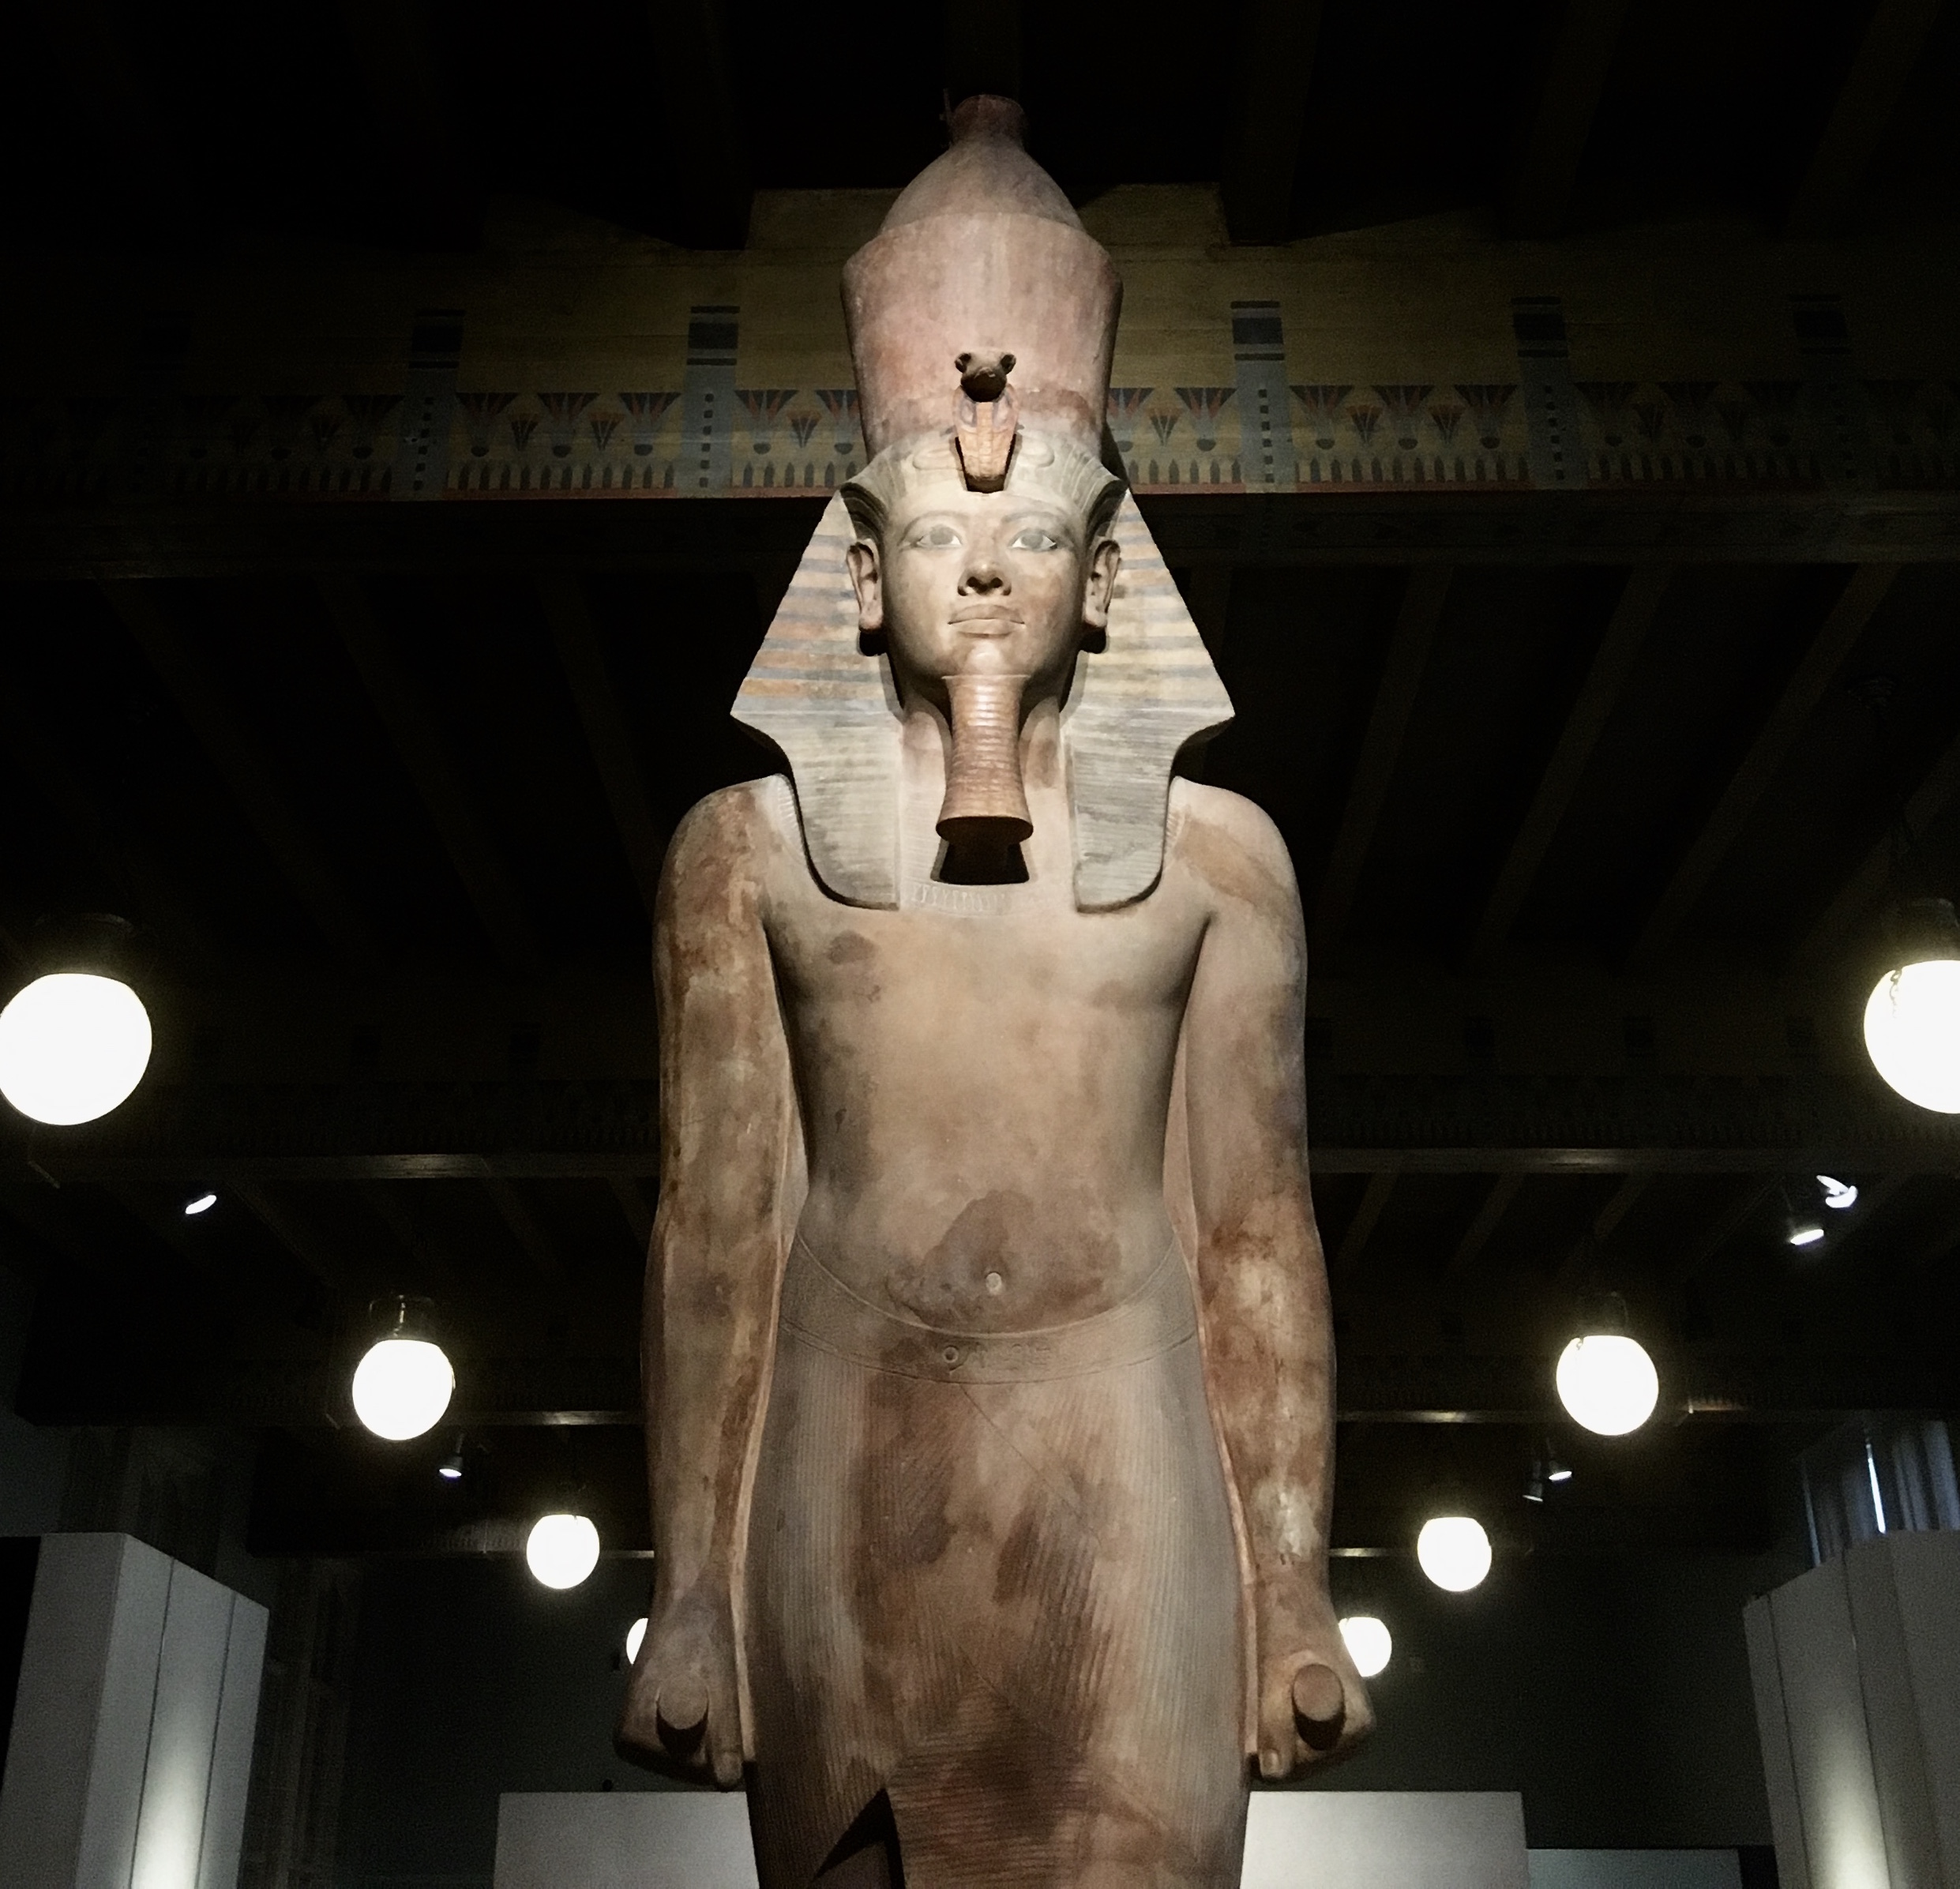 The renovated Tut statue at the Oriental Institute in Chicago